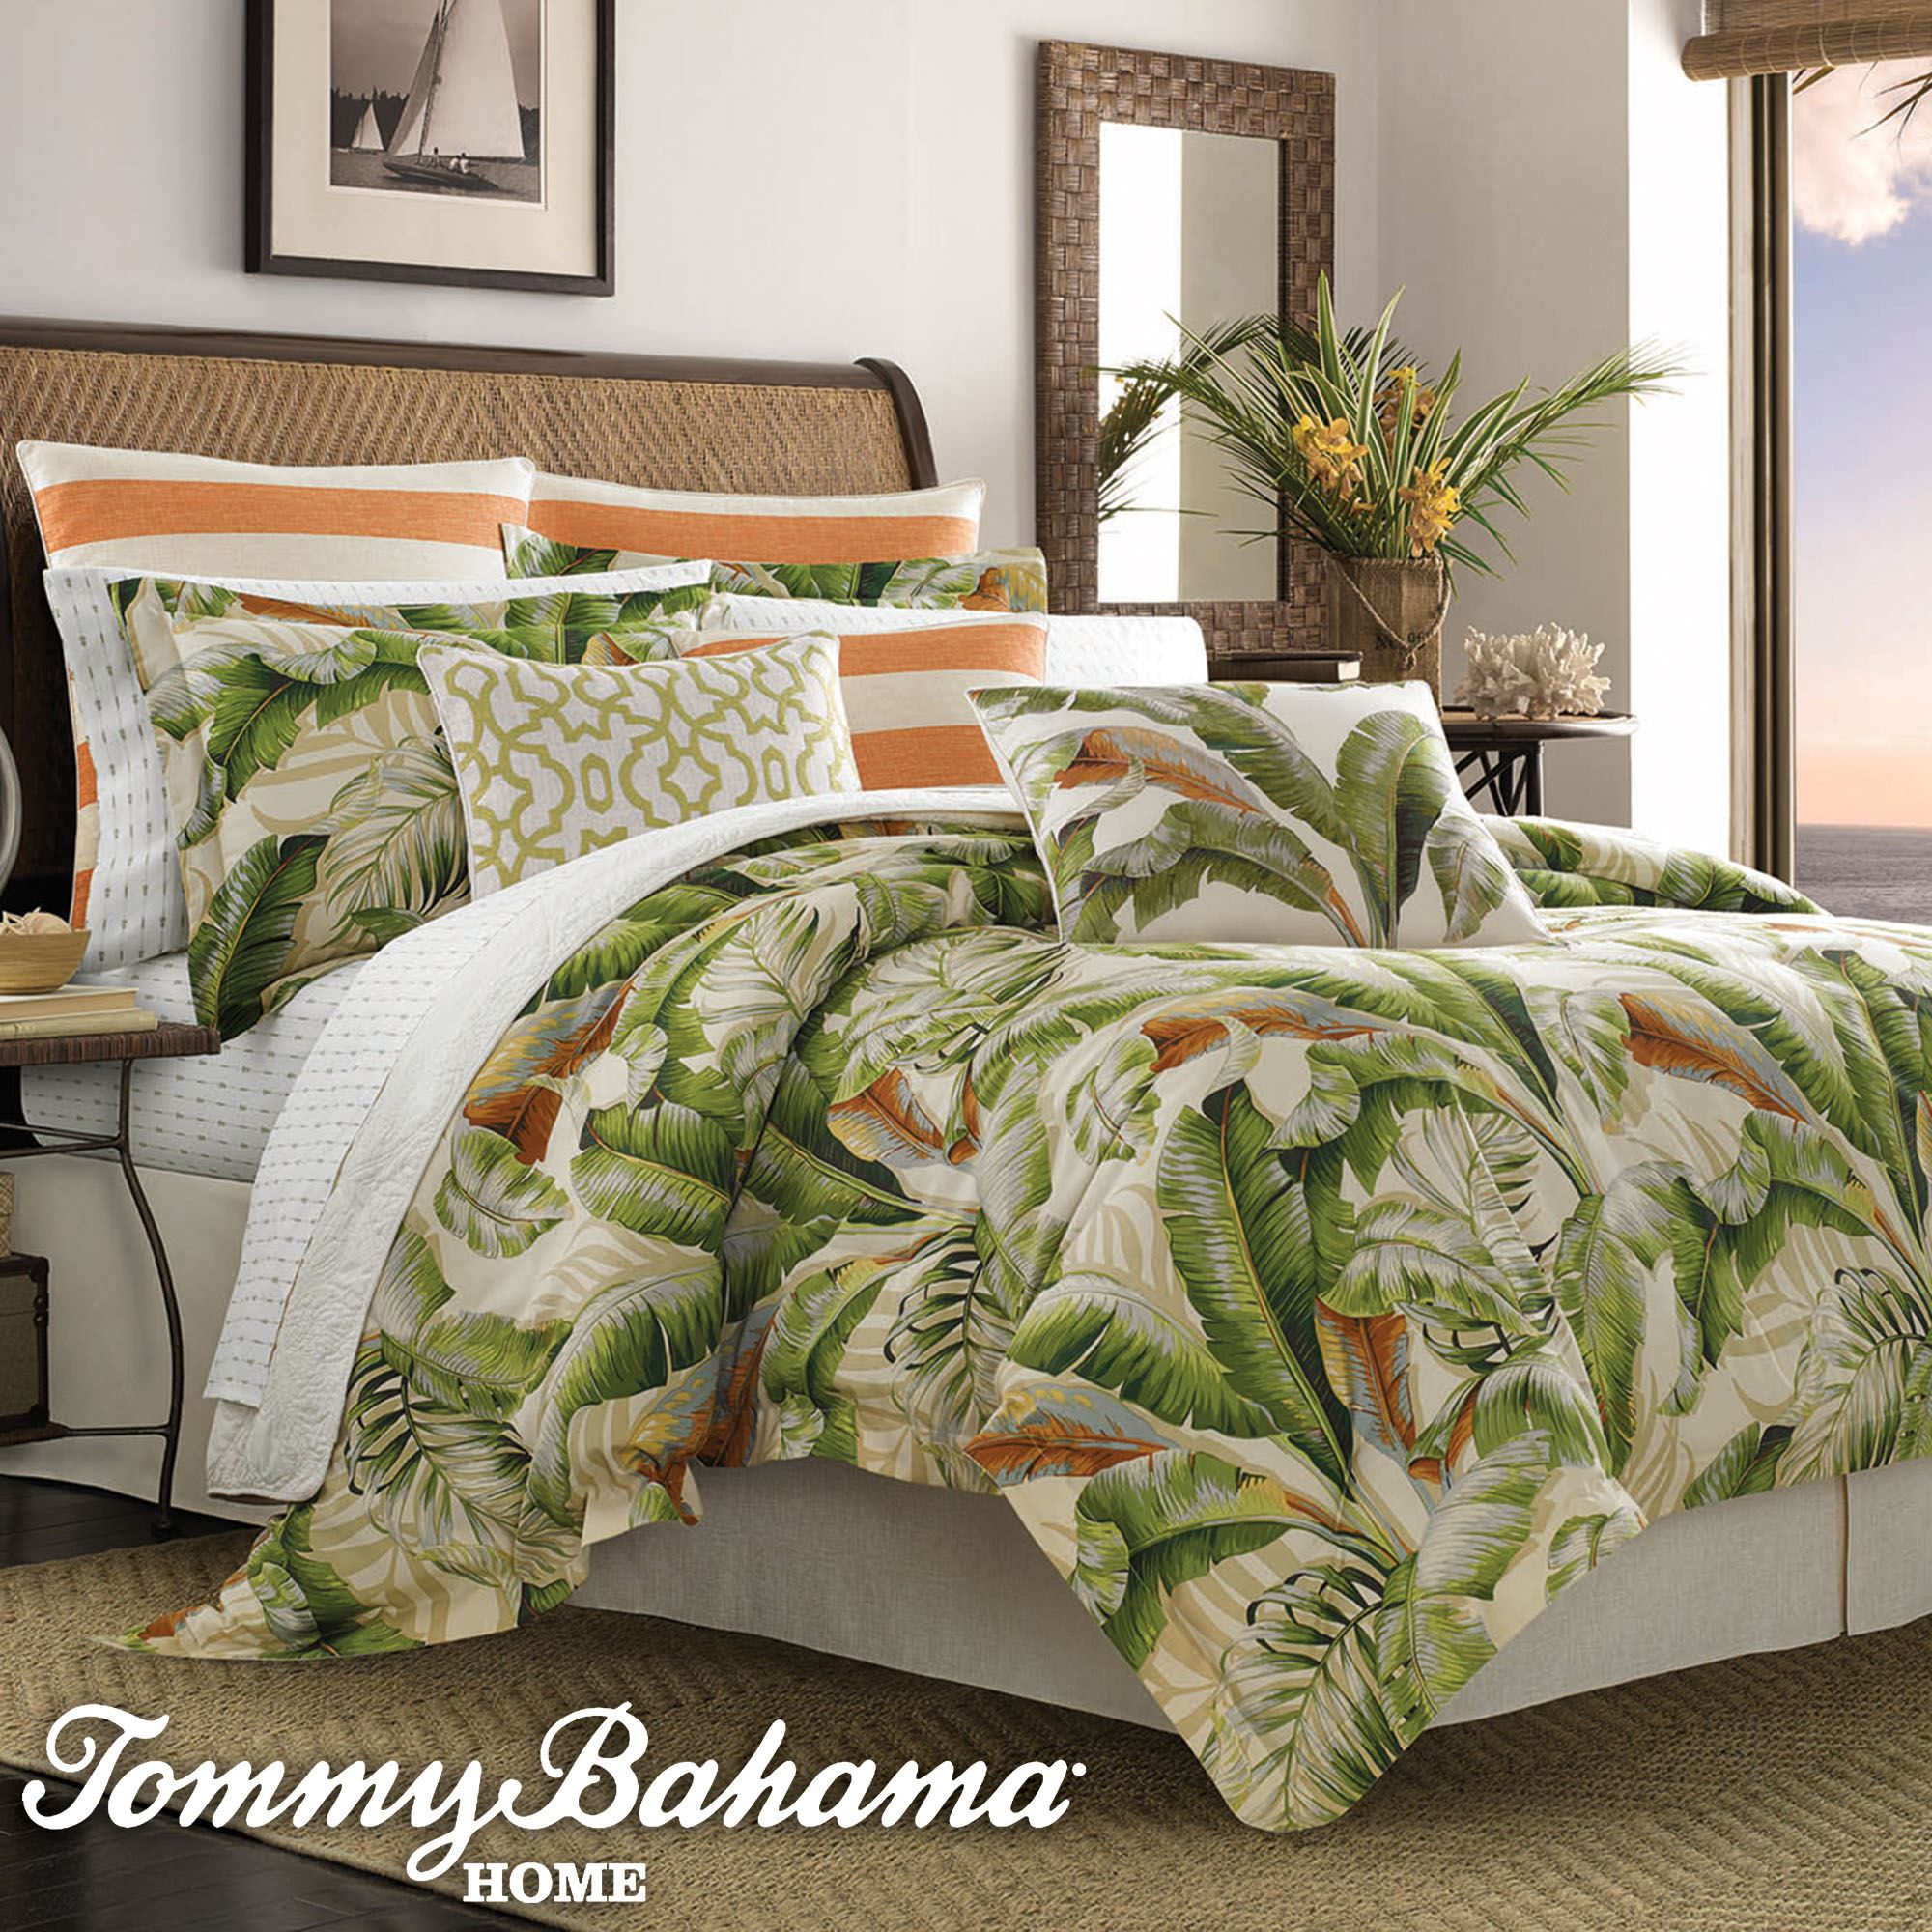 Palmiers Tropical Comforter Bedding By Tommy Bahama